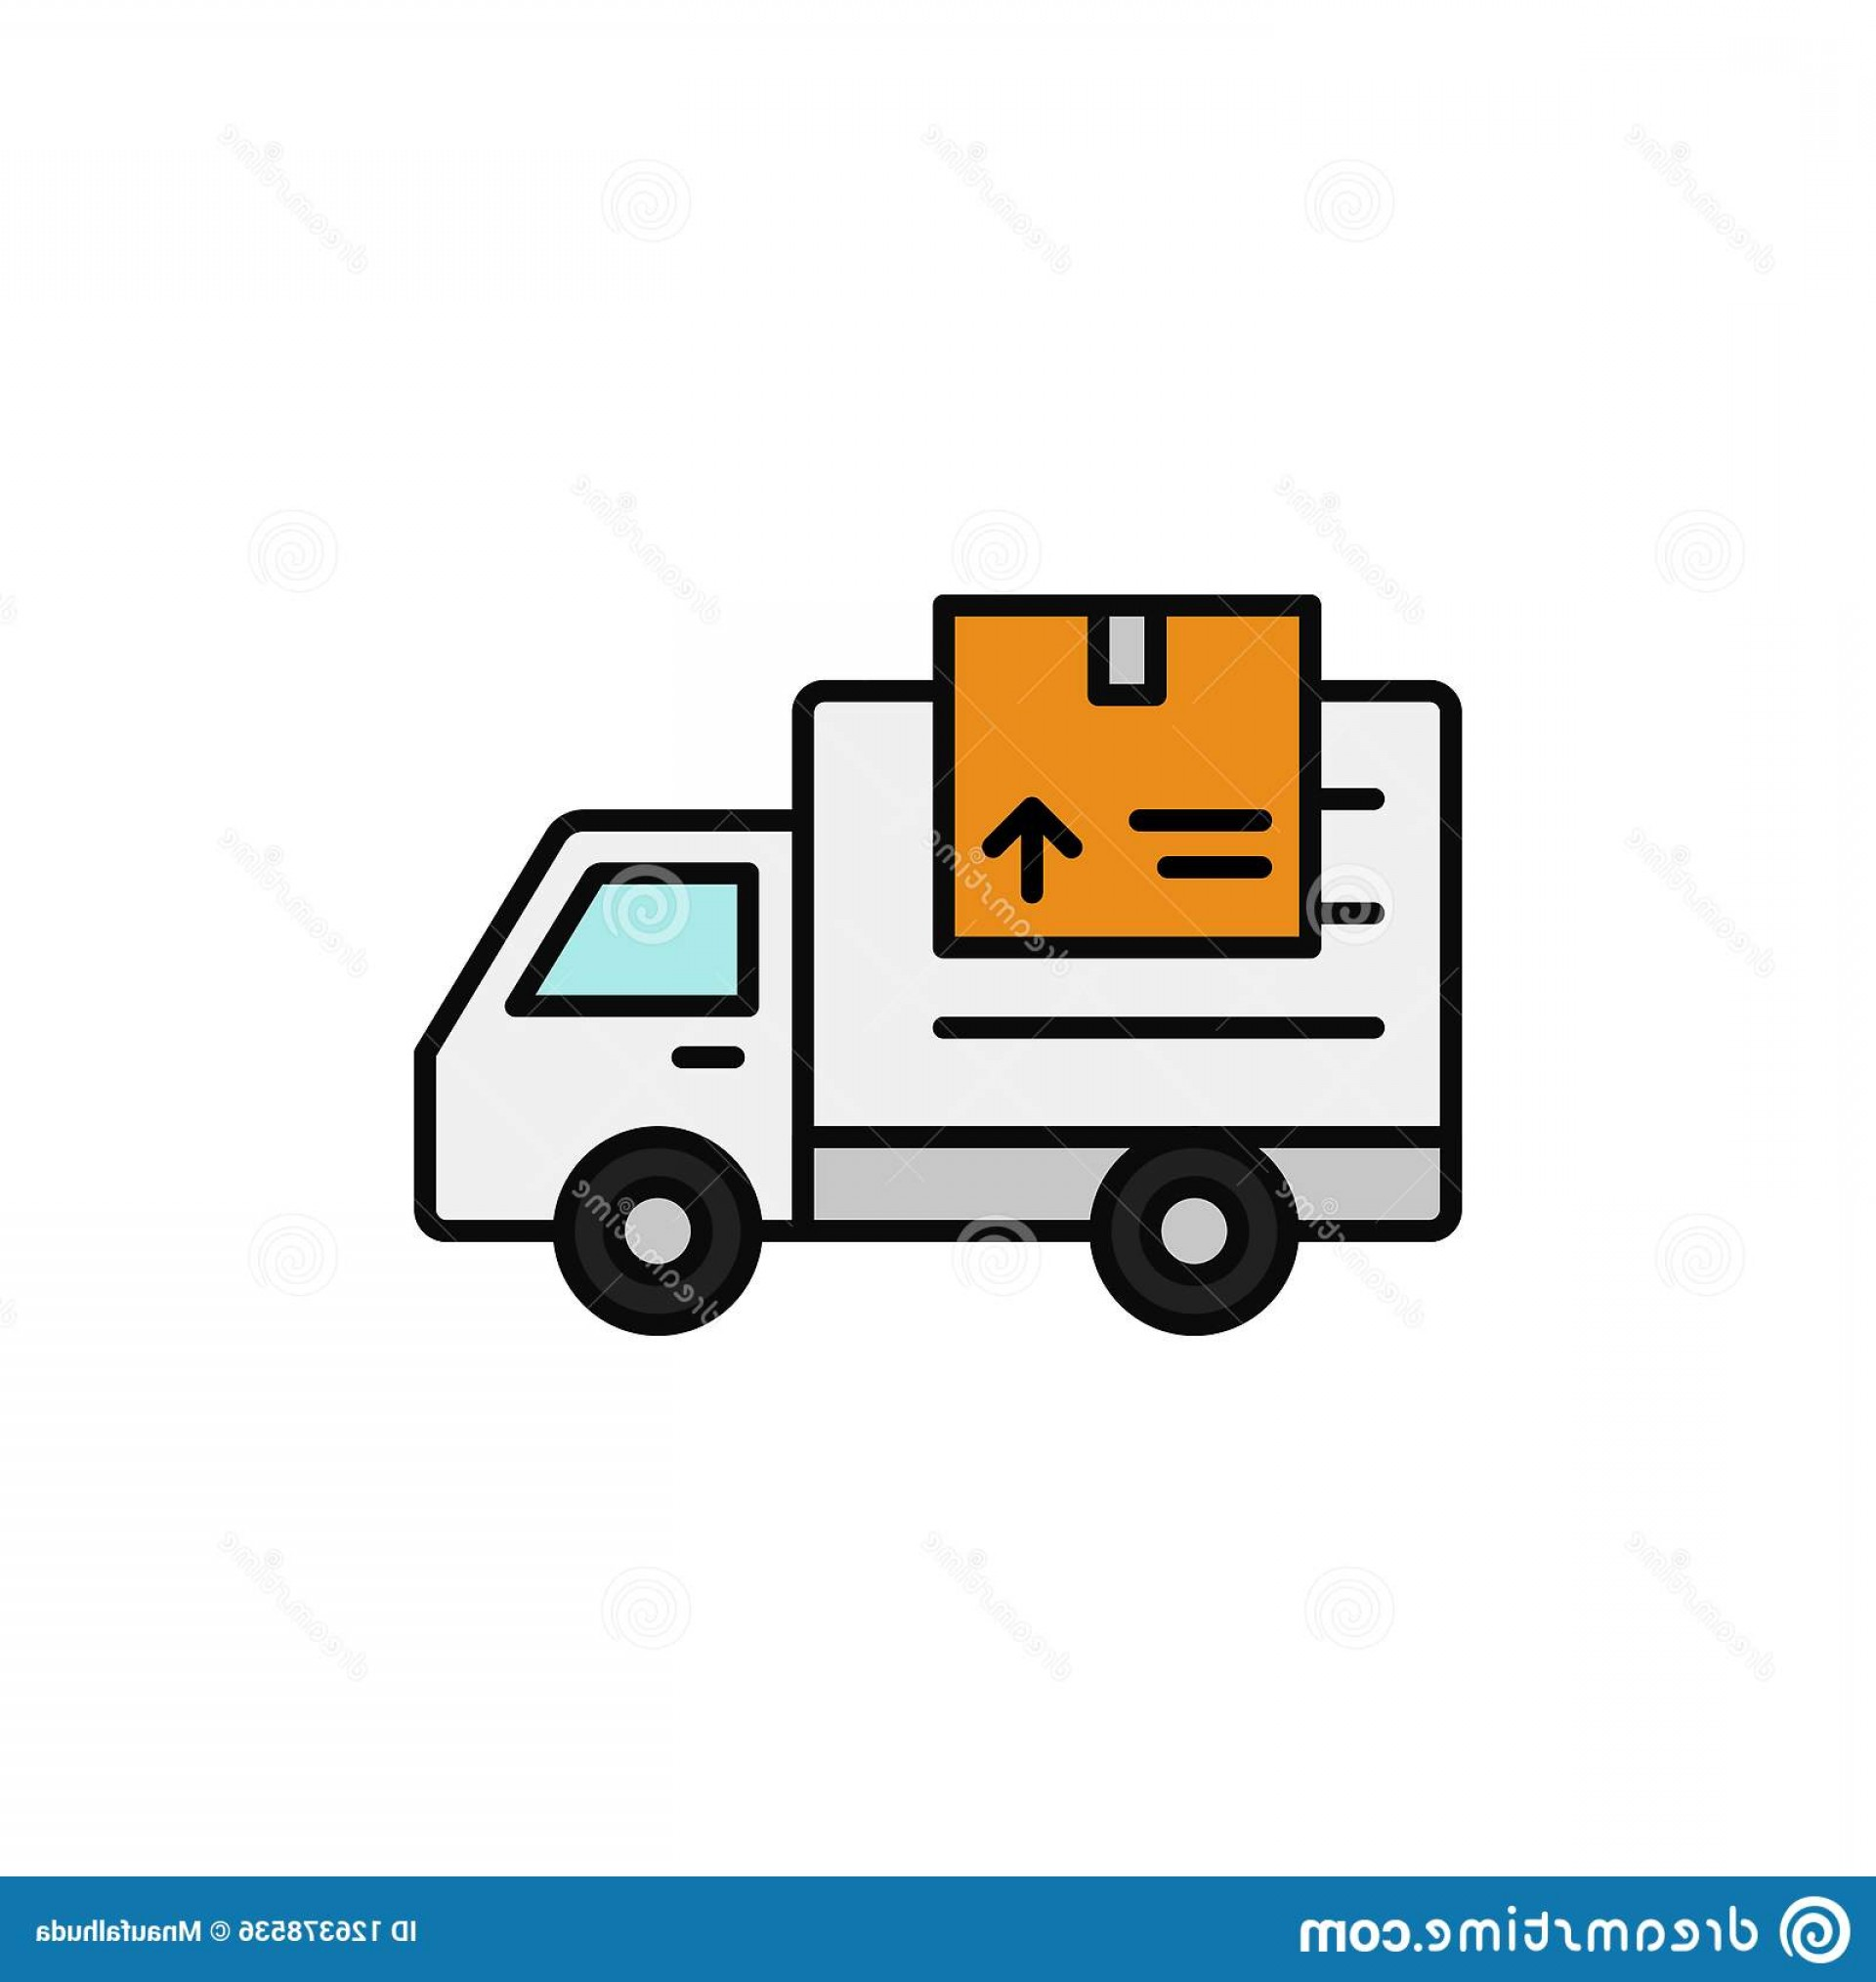 Packages On A Truck Vector: Delivery Truck Package Icon Shipment Item Transportation Illustration Simple Outline Vector Symbol Design Delivery Truck Image